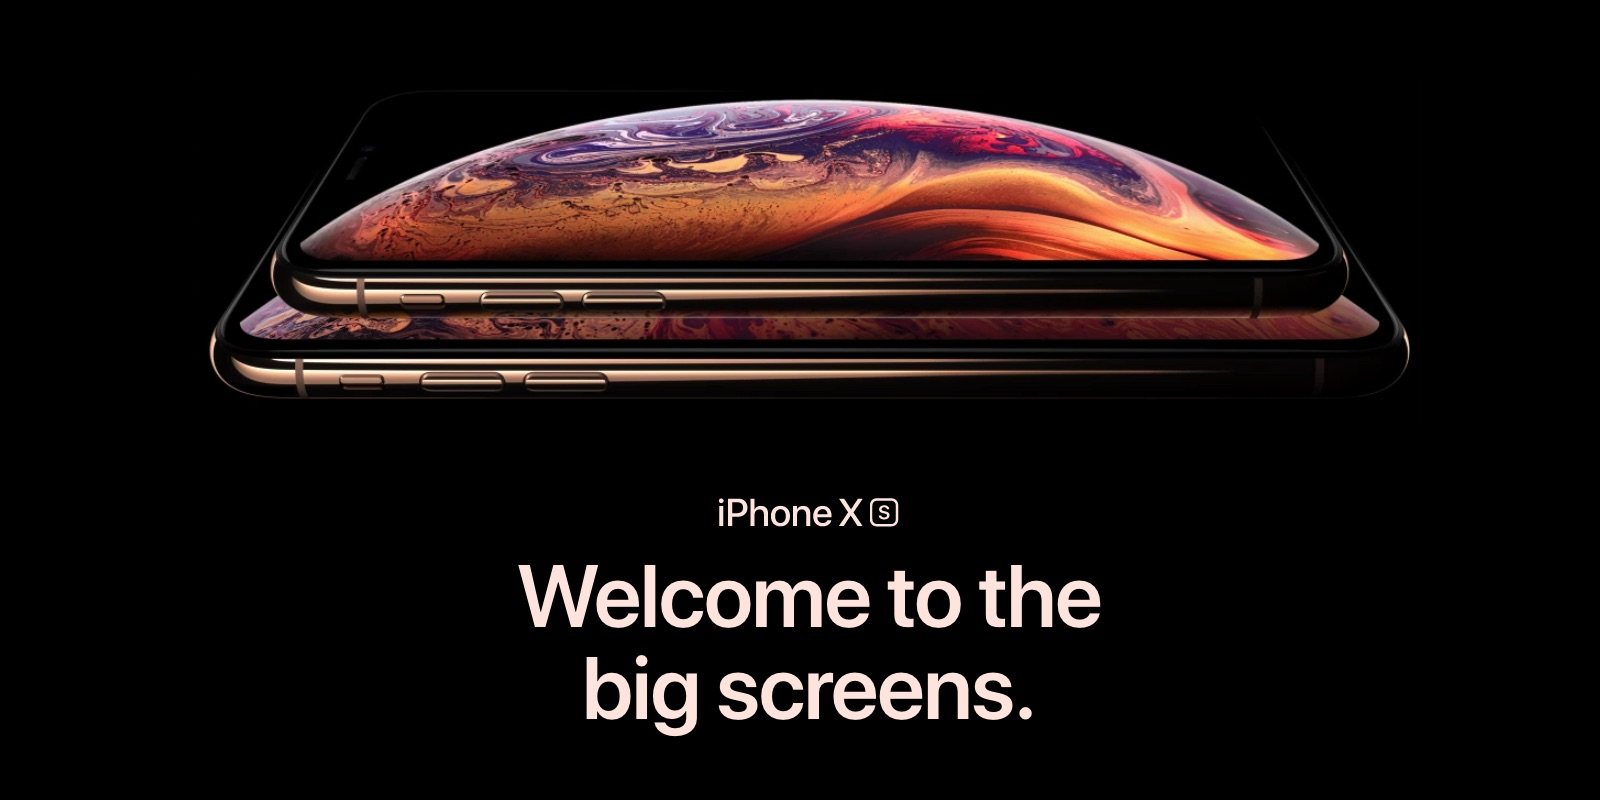 Bogo Free Iphone Xs Airplay 2 Ready 4k Tvs From 400 More 9to5mac